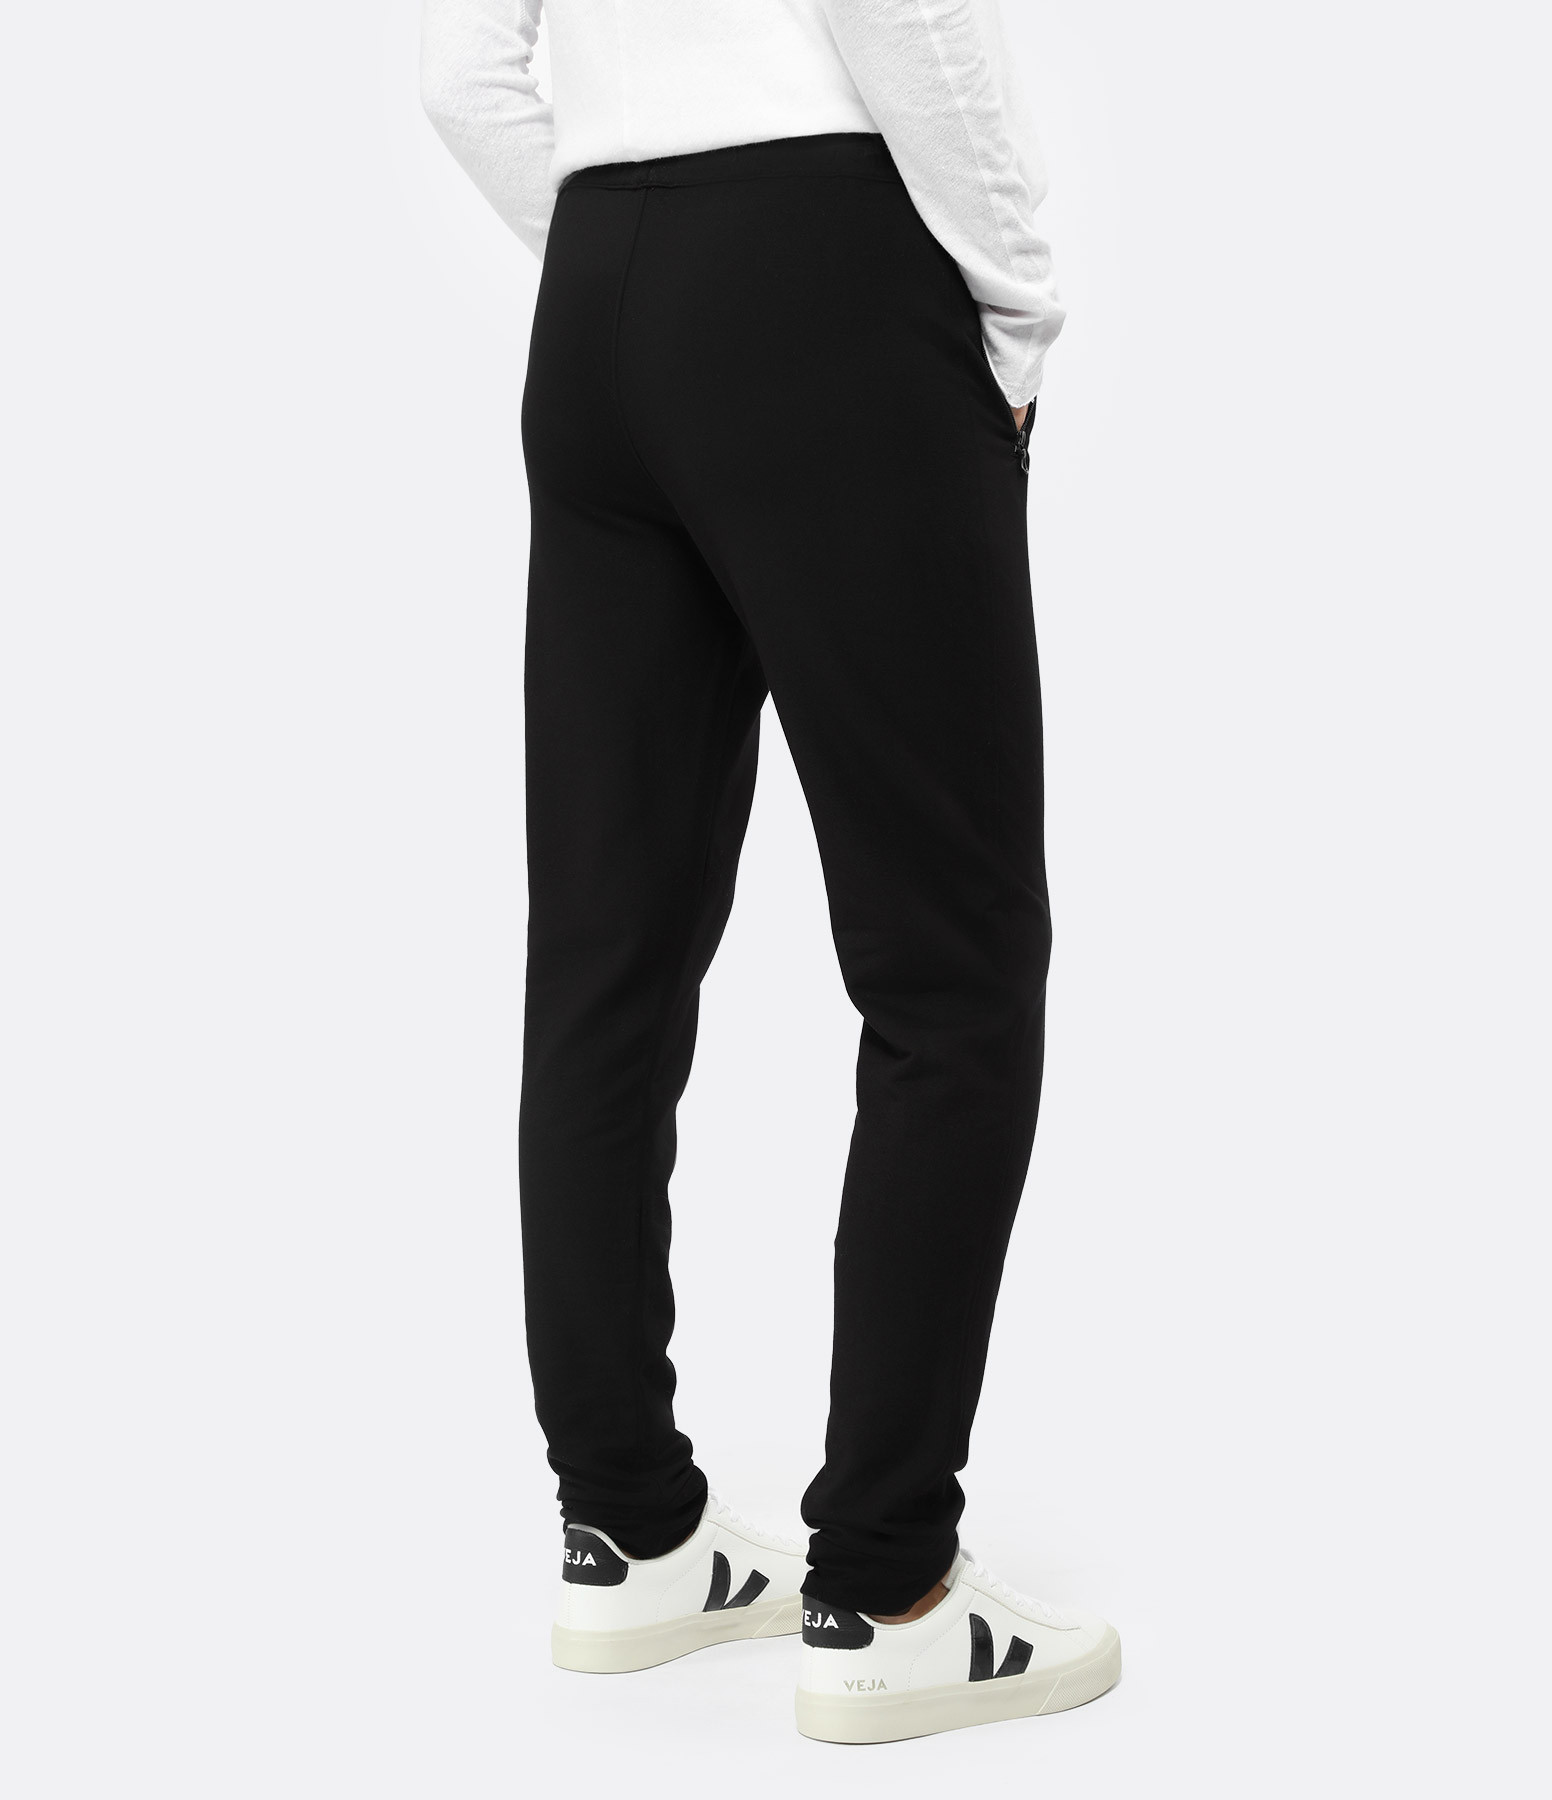 MAJESTIC FILATURES - Pantalon Zip Noir